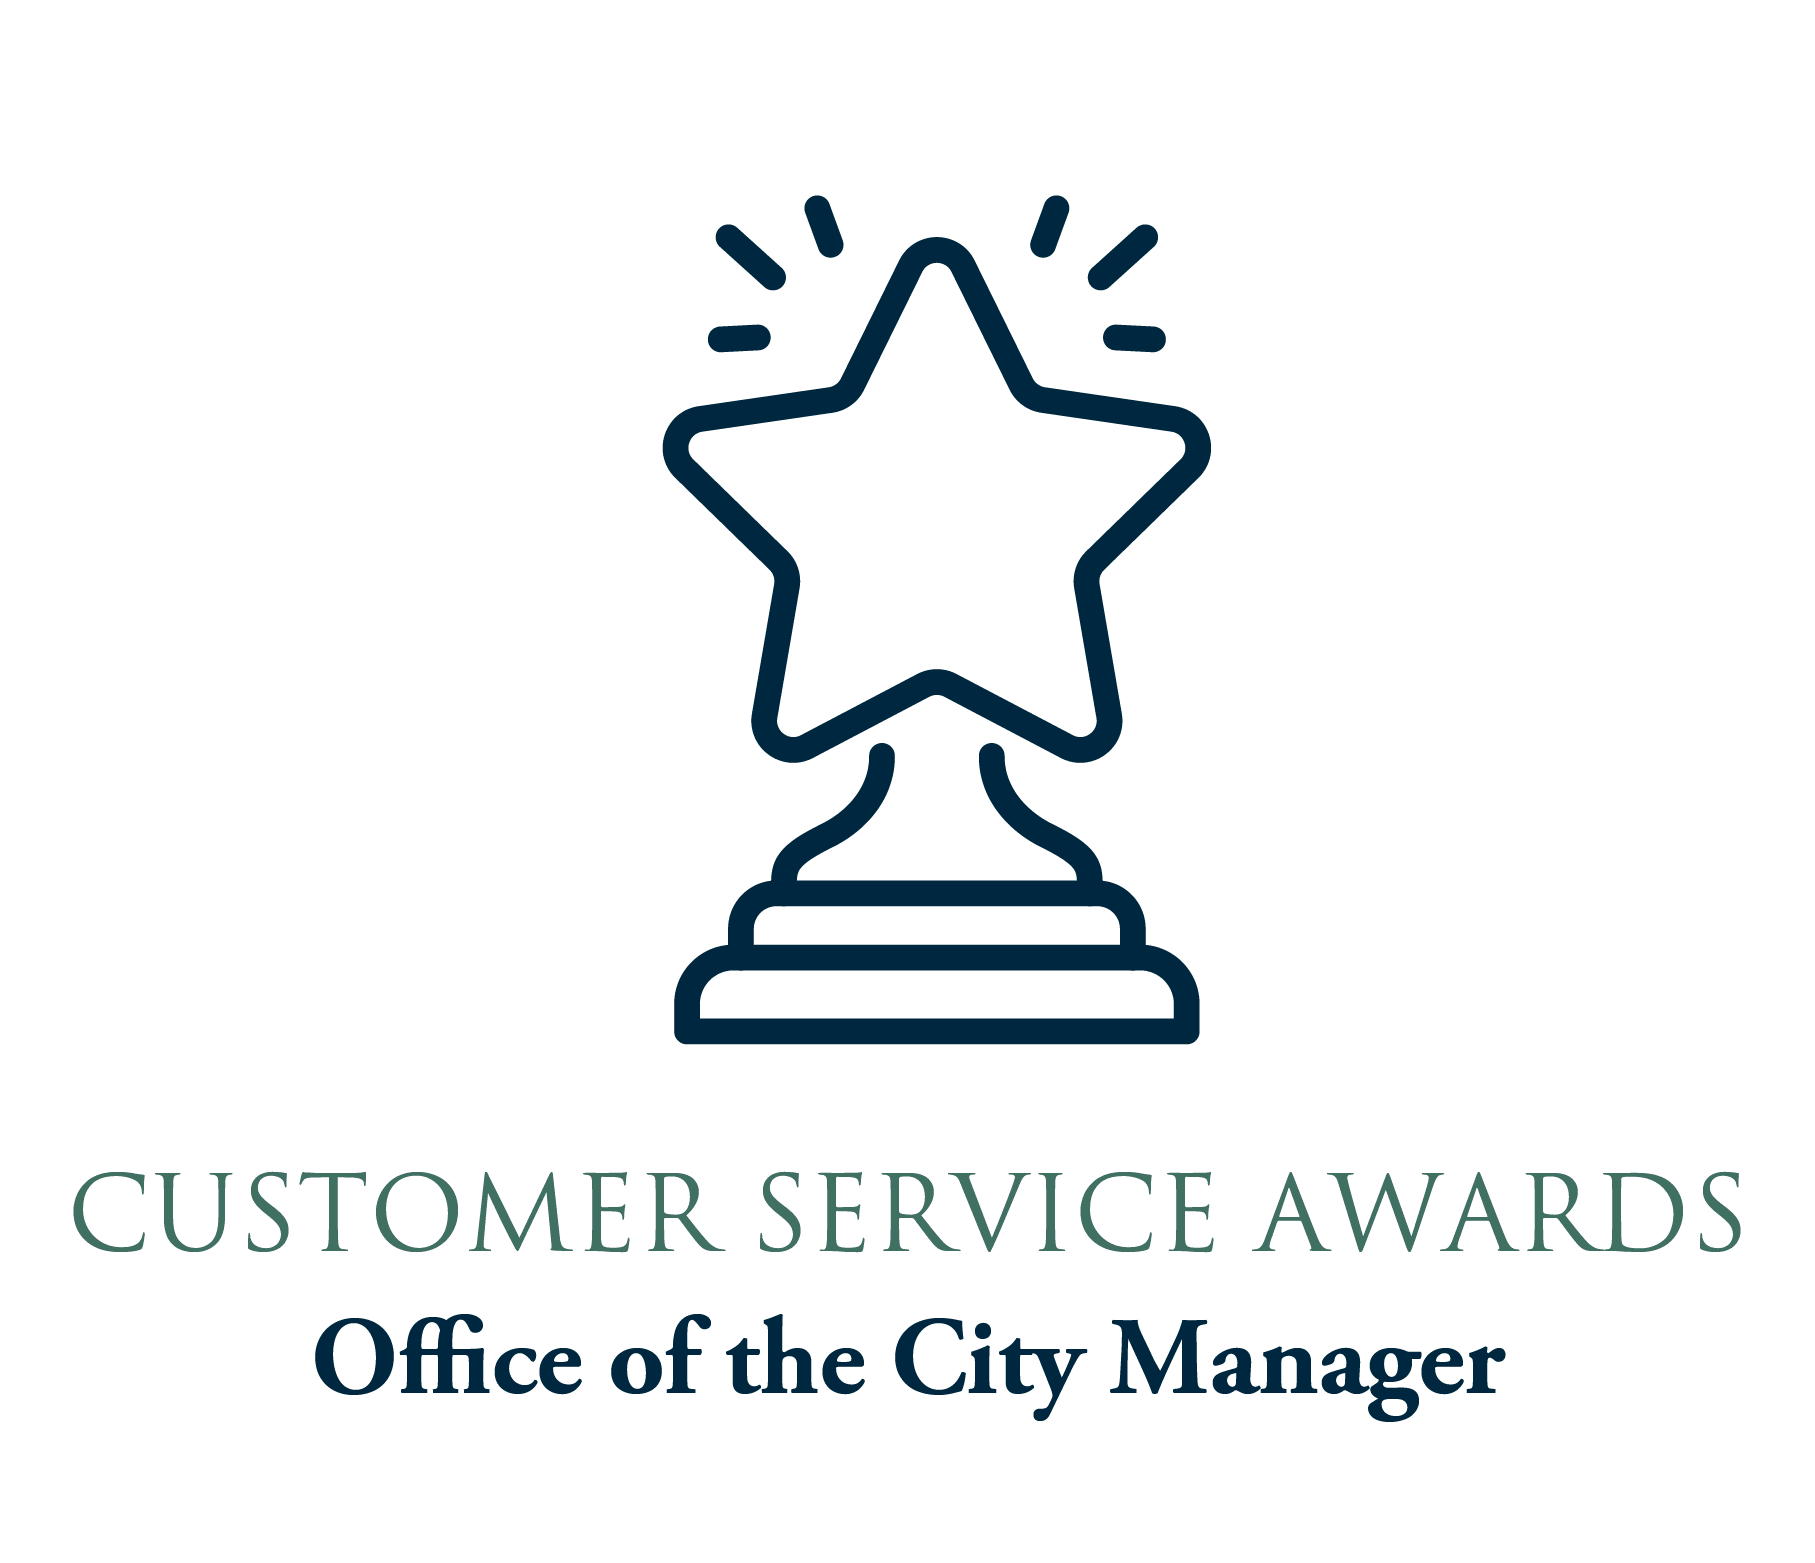 Customer Service Award graphic with line art trophy_102819